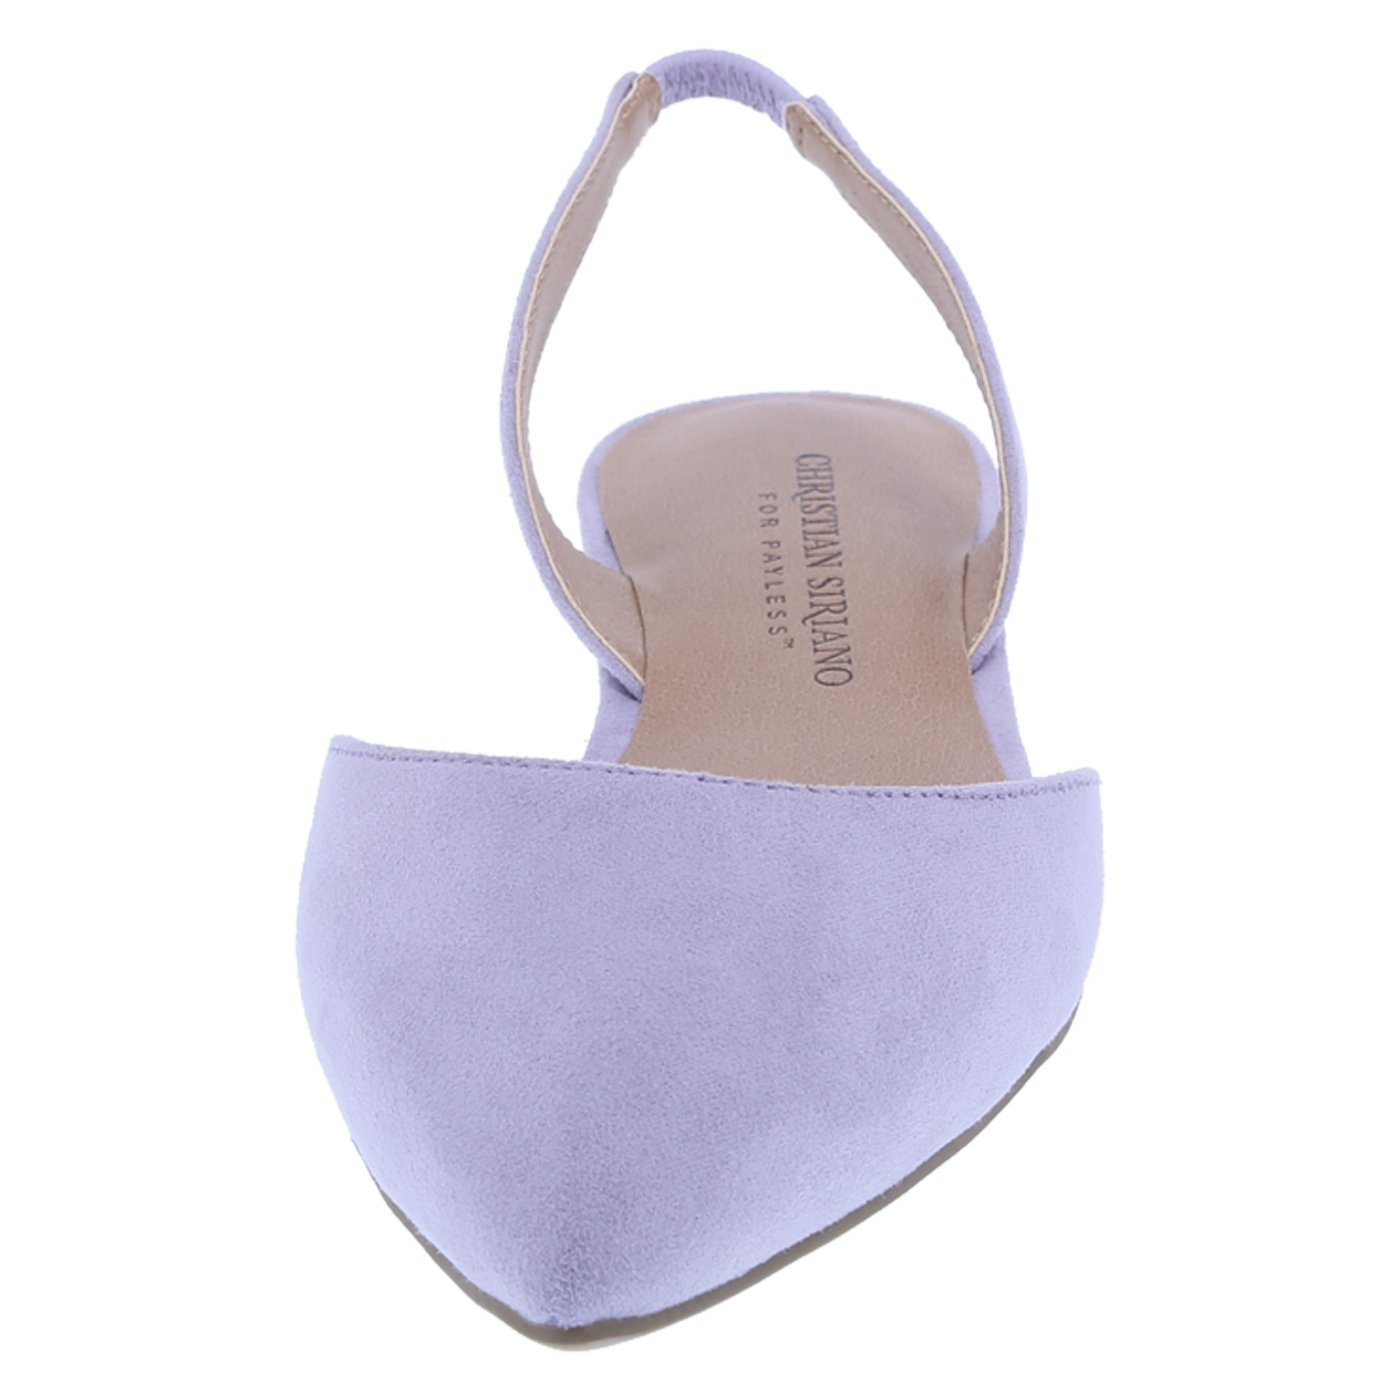 53f2aa31d64 Christian Siriano for Payless Women s Lilac Suede Women s Betty 2-Pc. Slingback  9.5 Regular  Amazon.ca  Shoes   Handbags